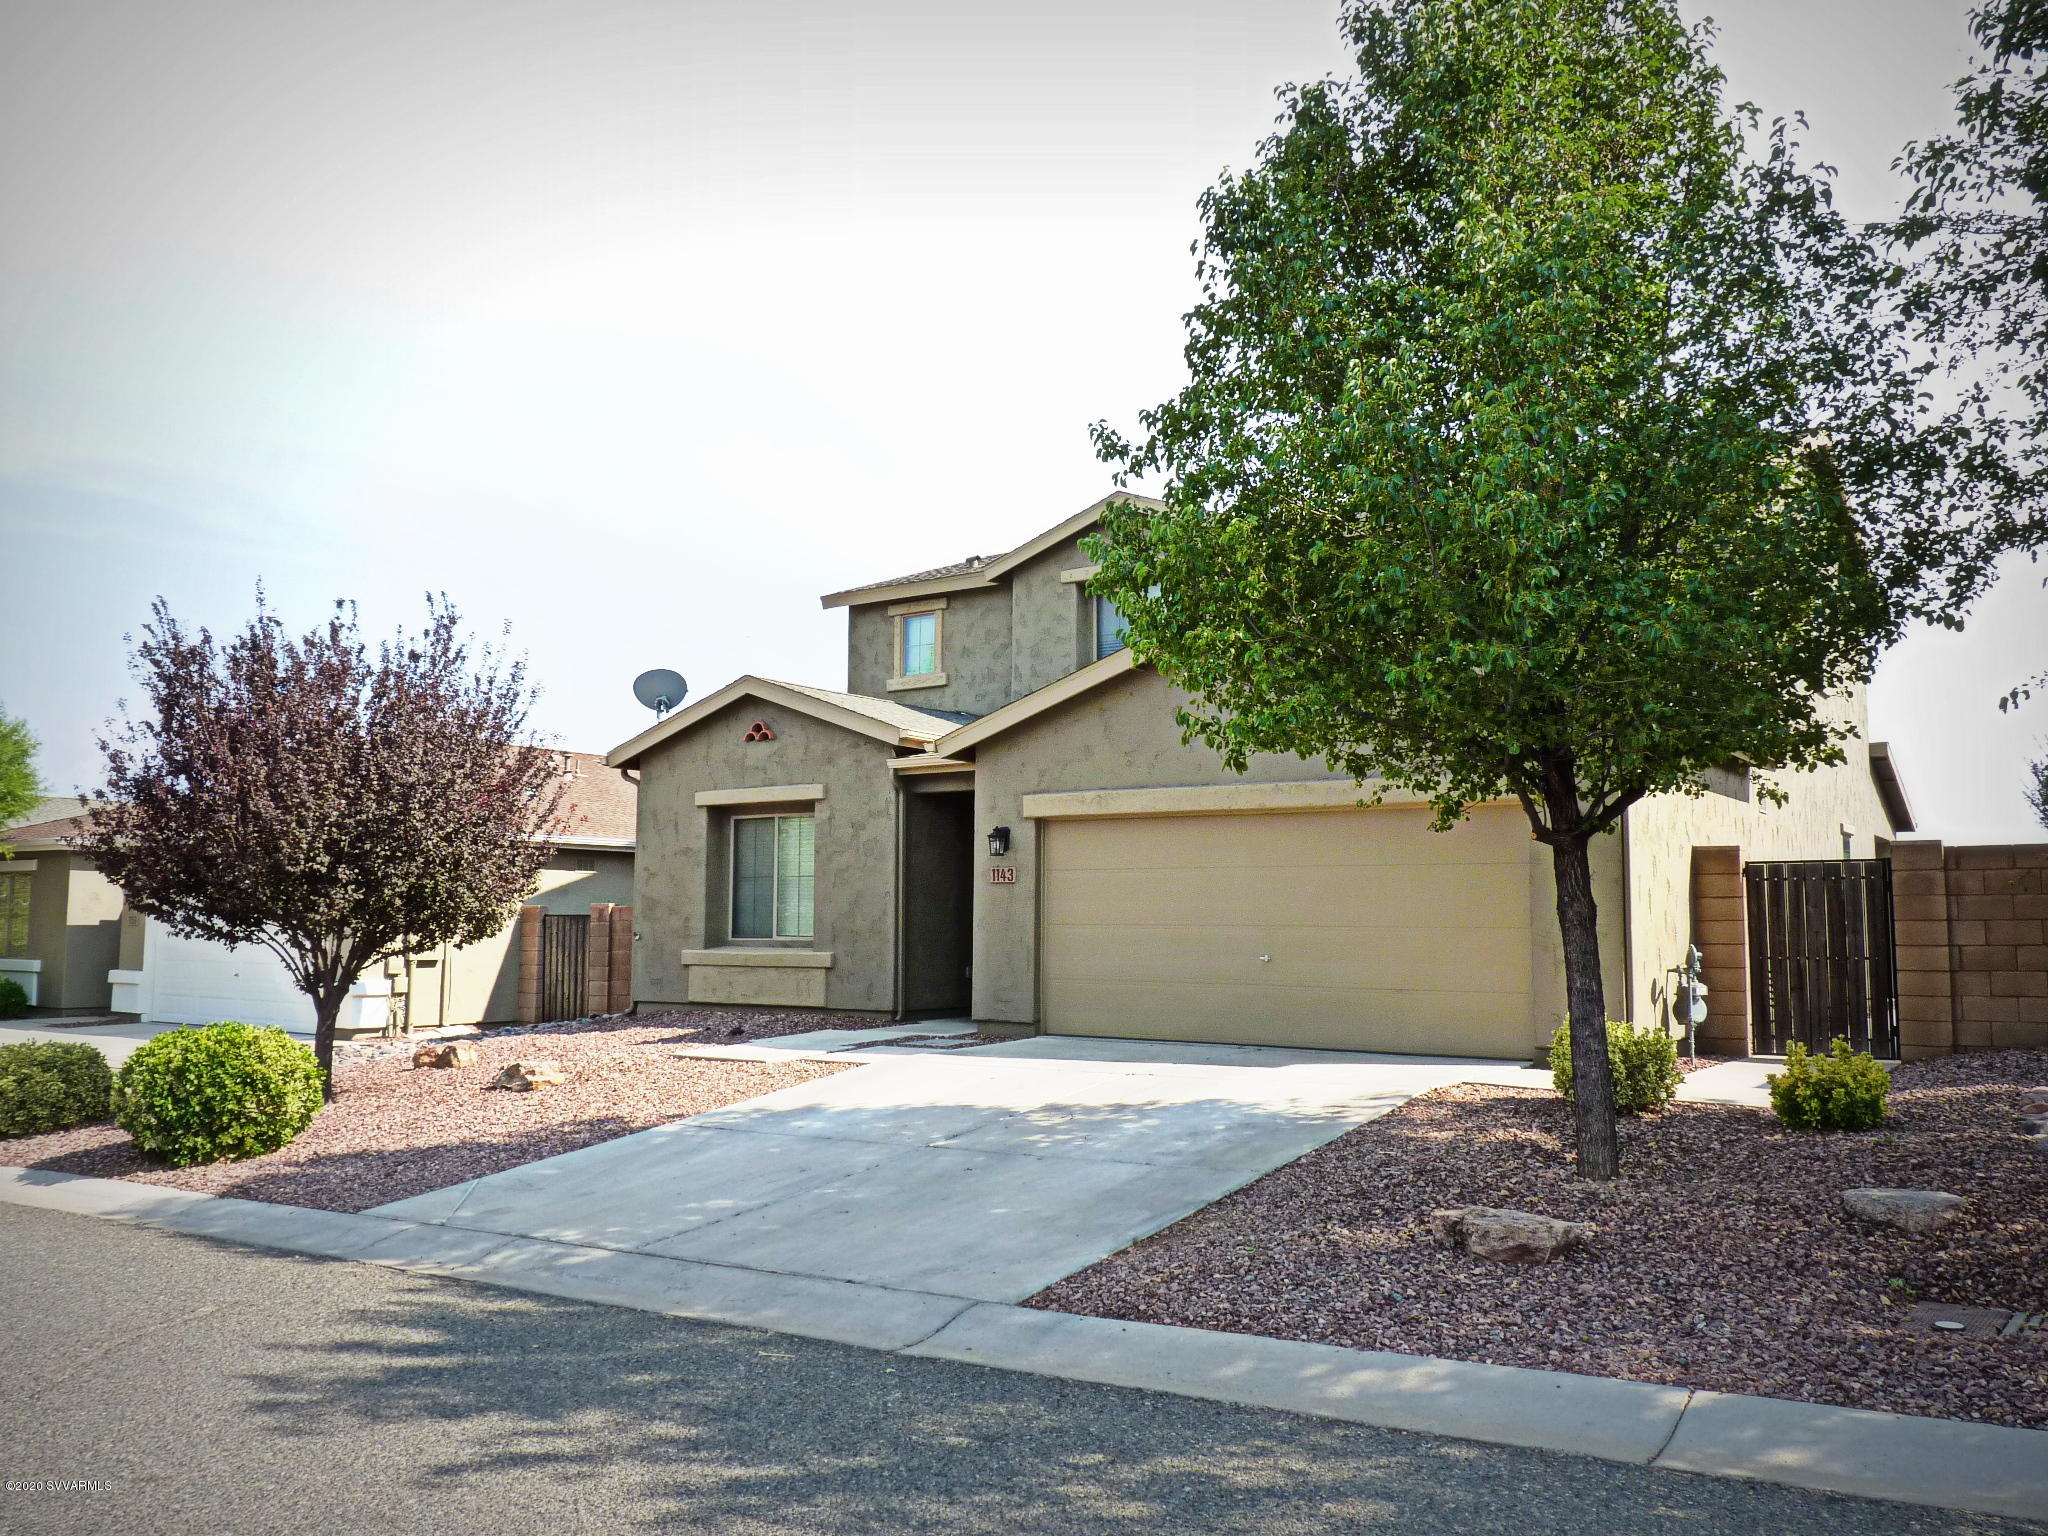 1143 Brentwood Way Chino Valley, AZ 86323